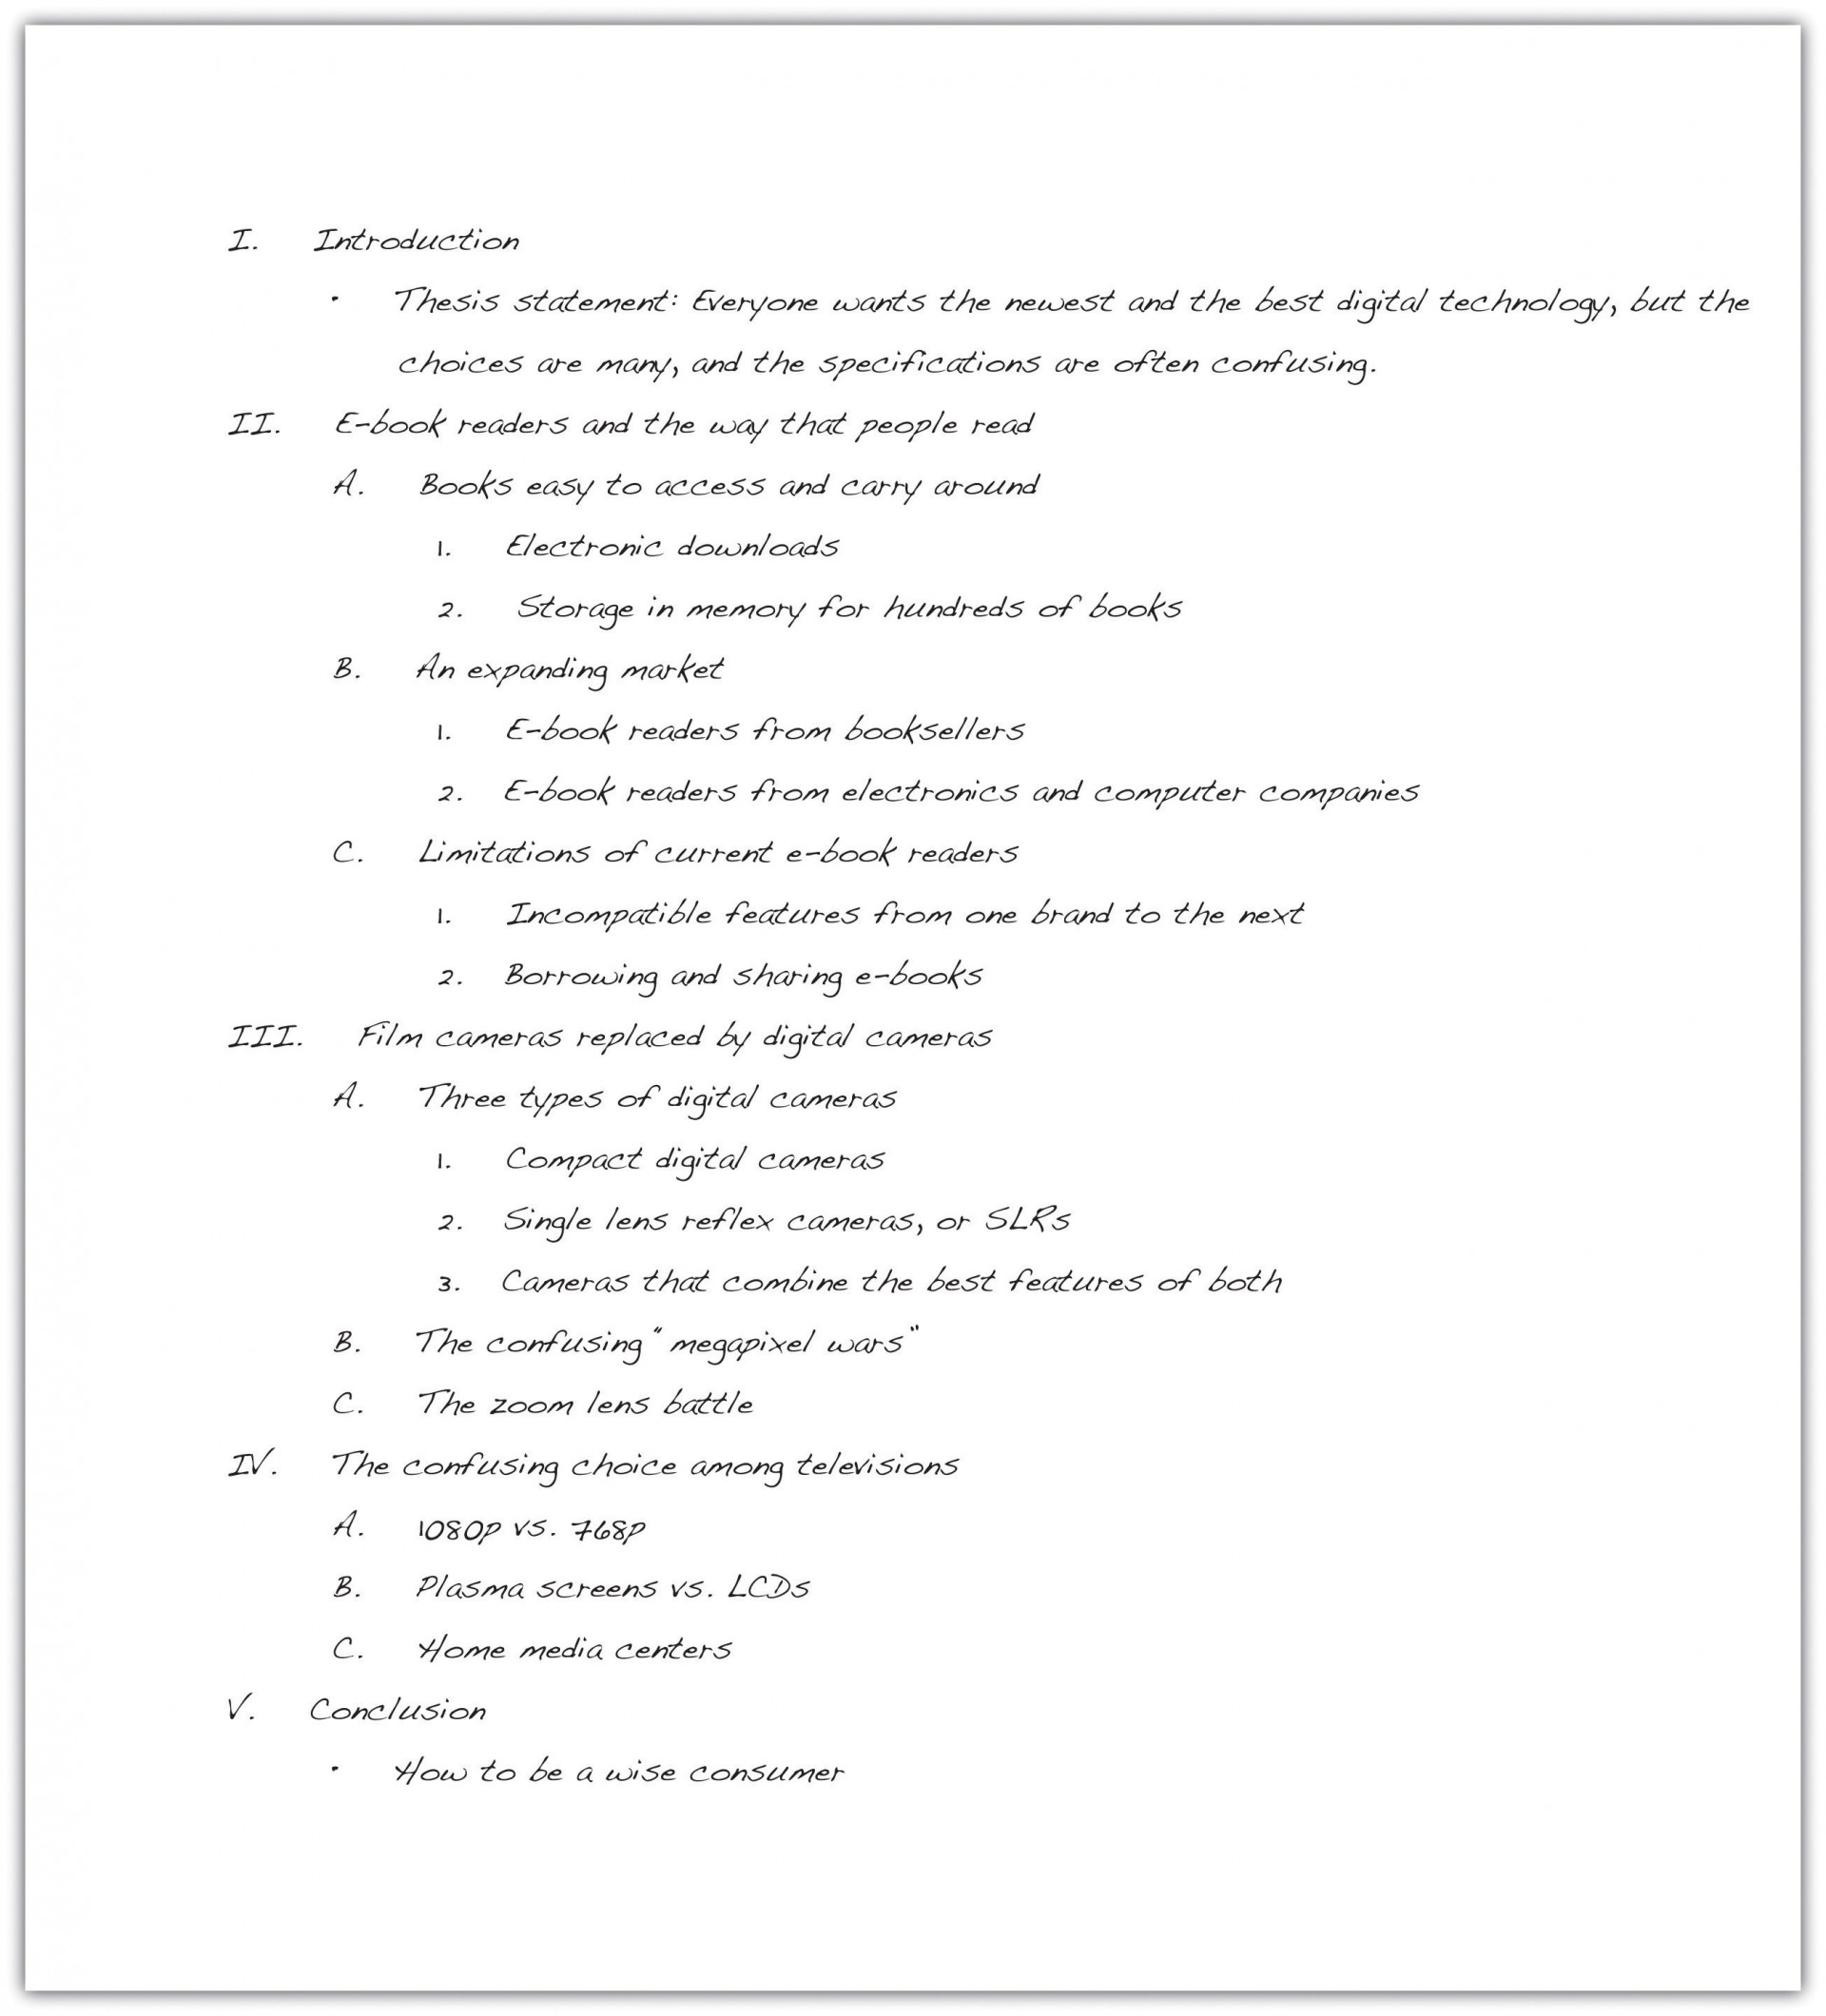 011 Research Paper Sample Outlines For Awful Papers Writing Example Apa Format 1920